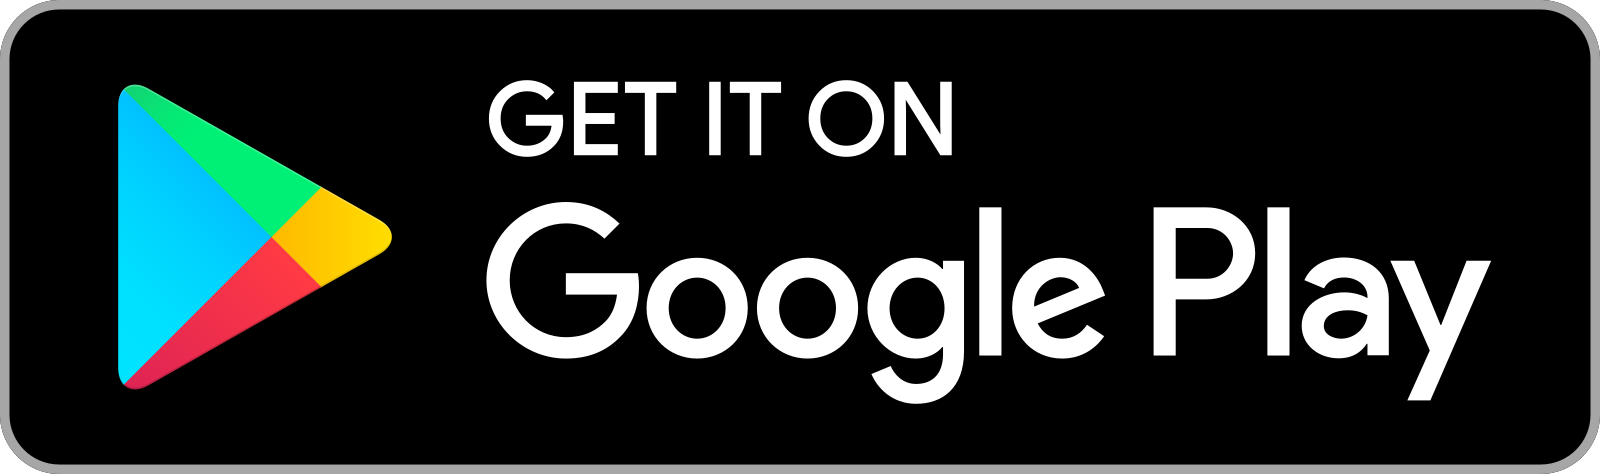 get it on google play badge 2 - Get it on Google Play Badge